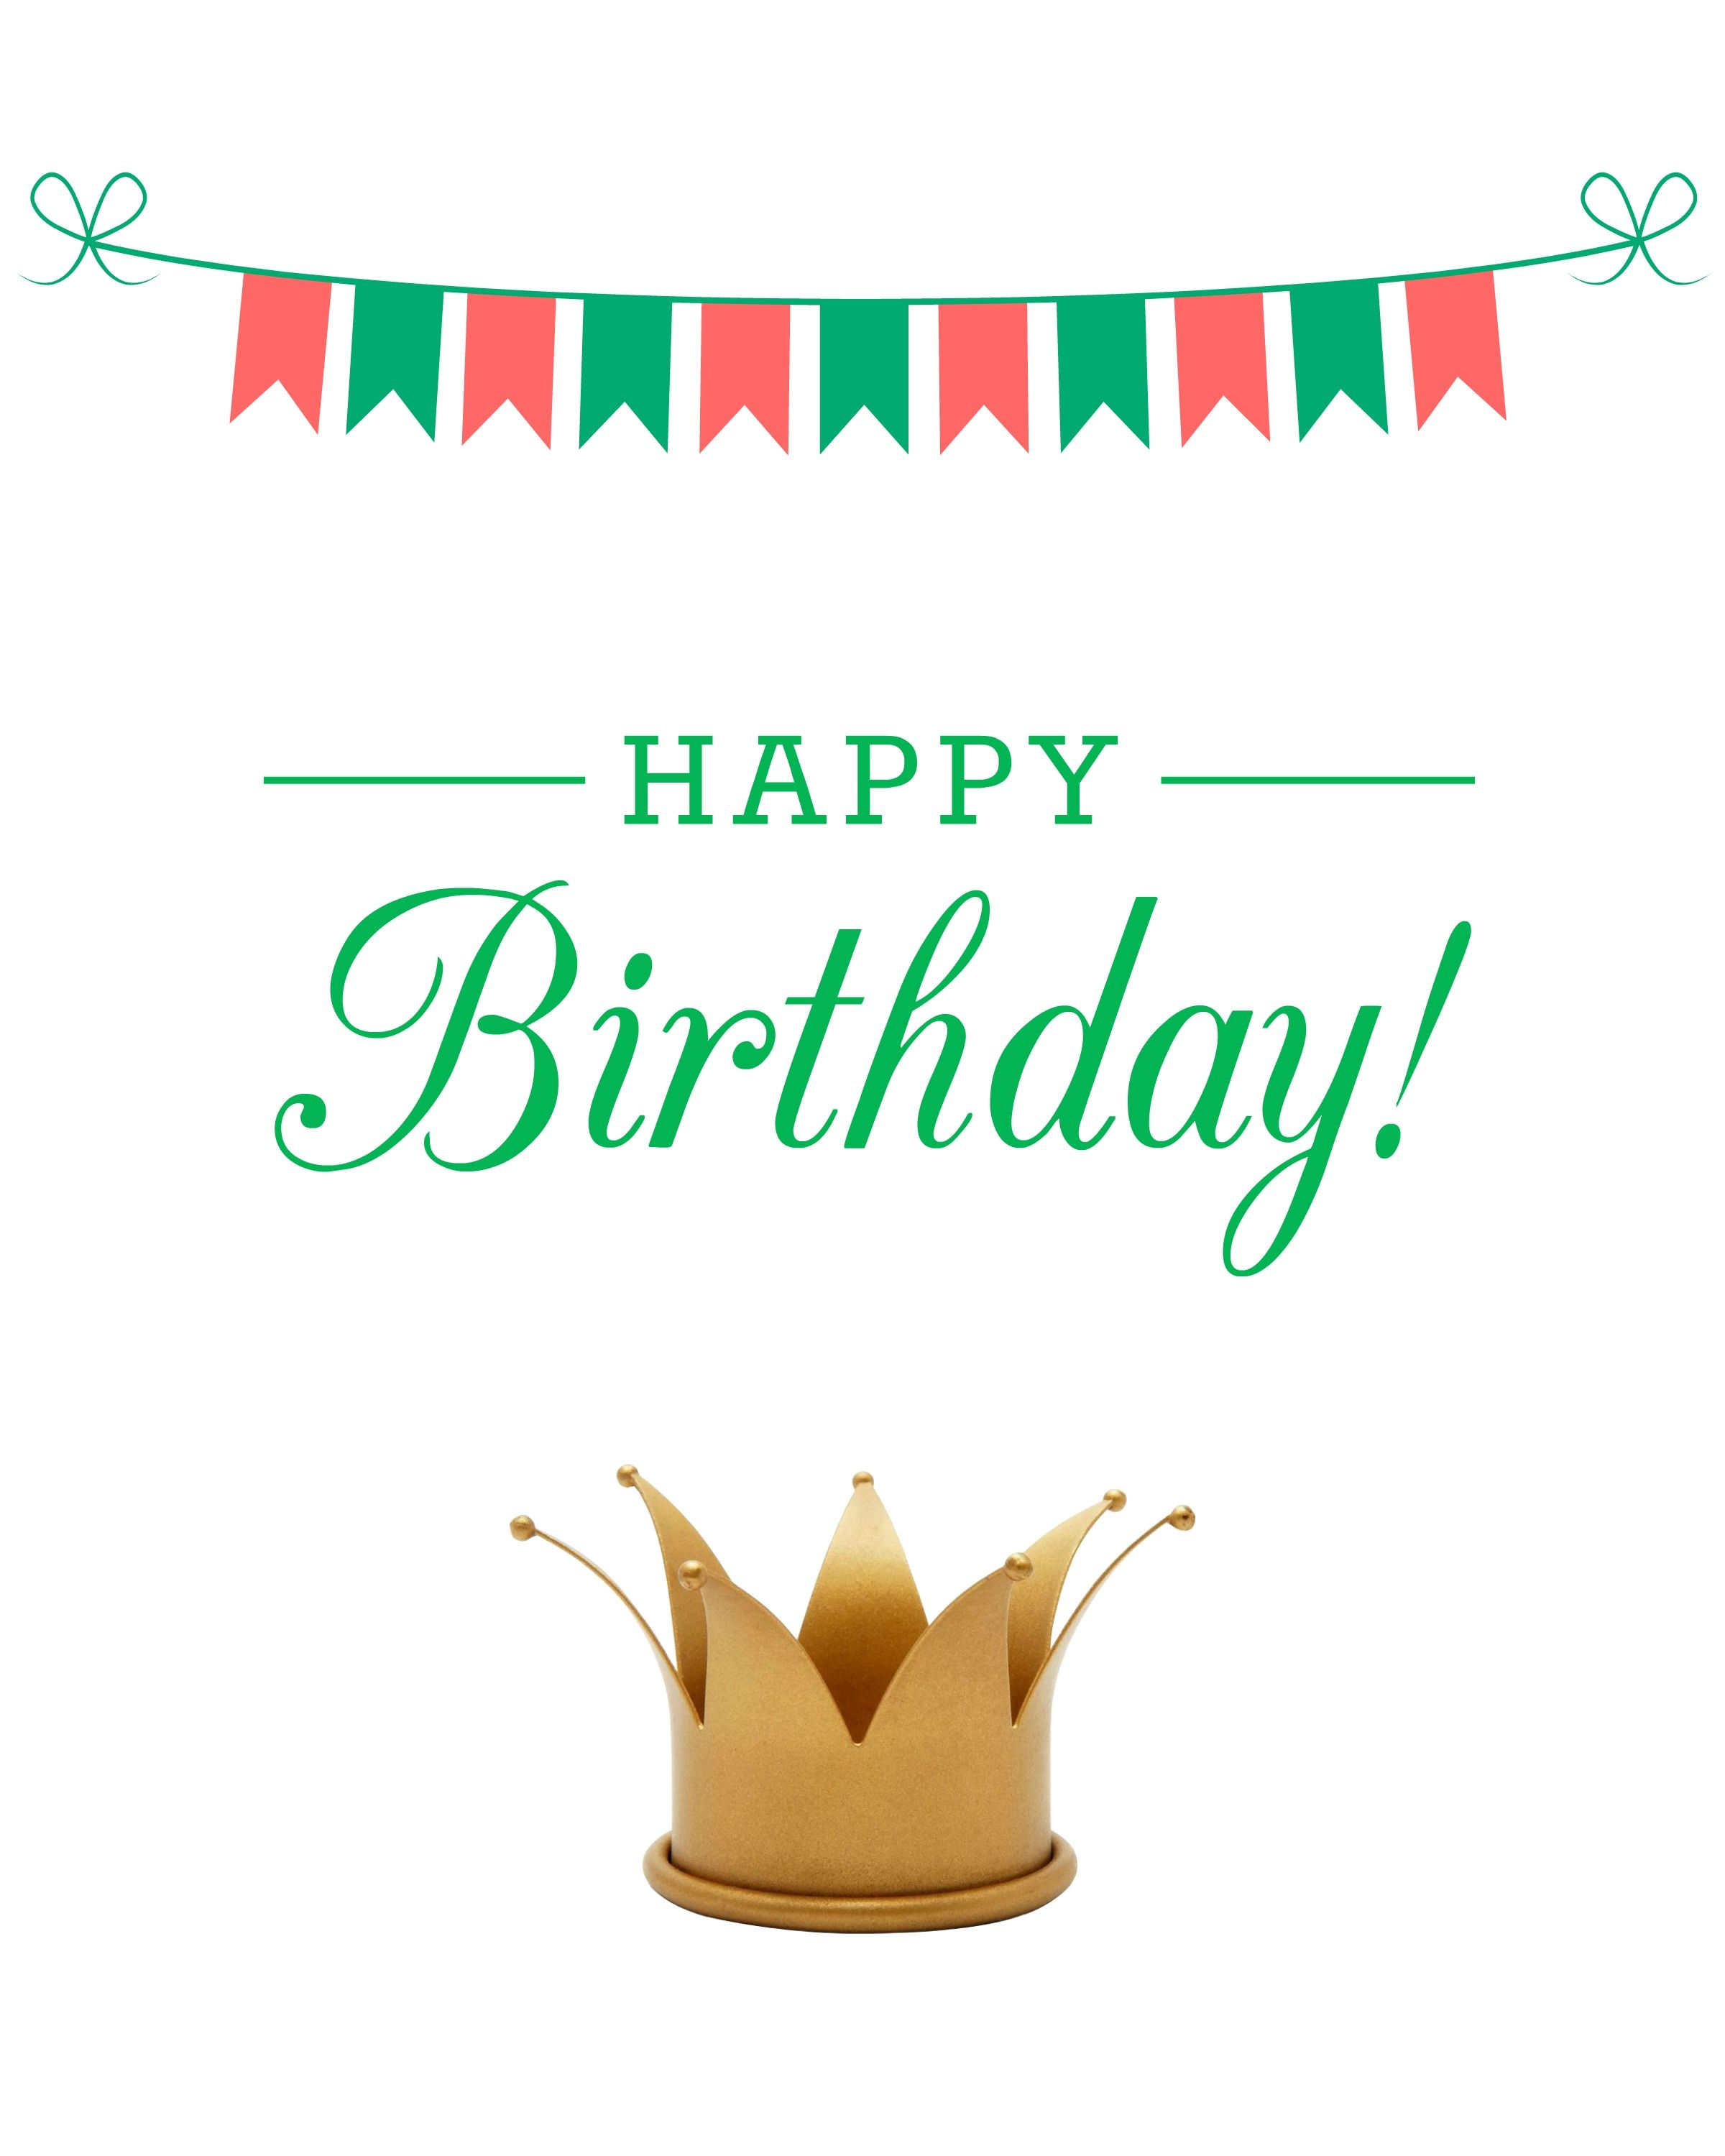 Happy Birthday Printable Perfect For Sending Wishes In An Email Designed With Love By ConfettiandBliss